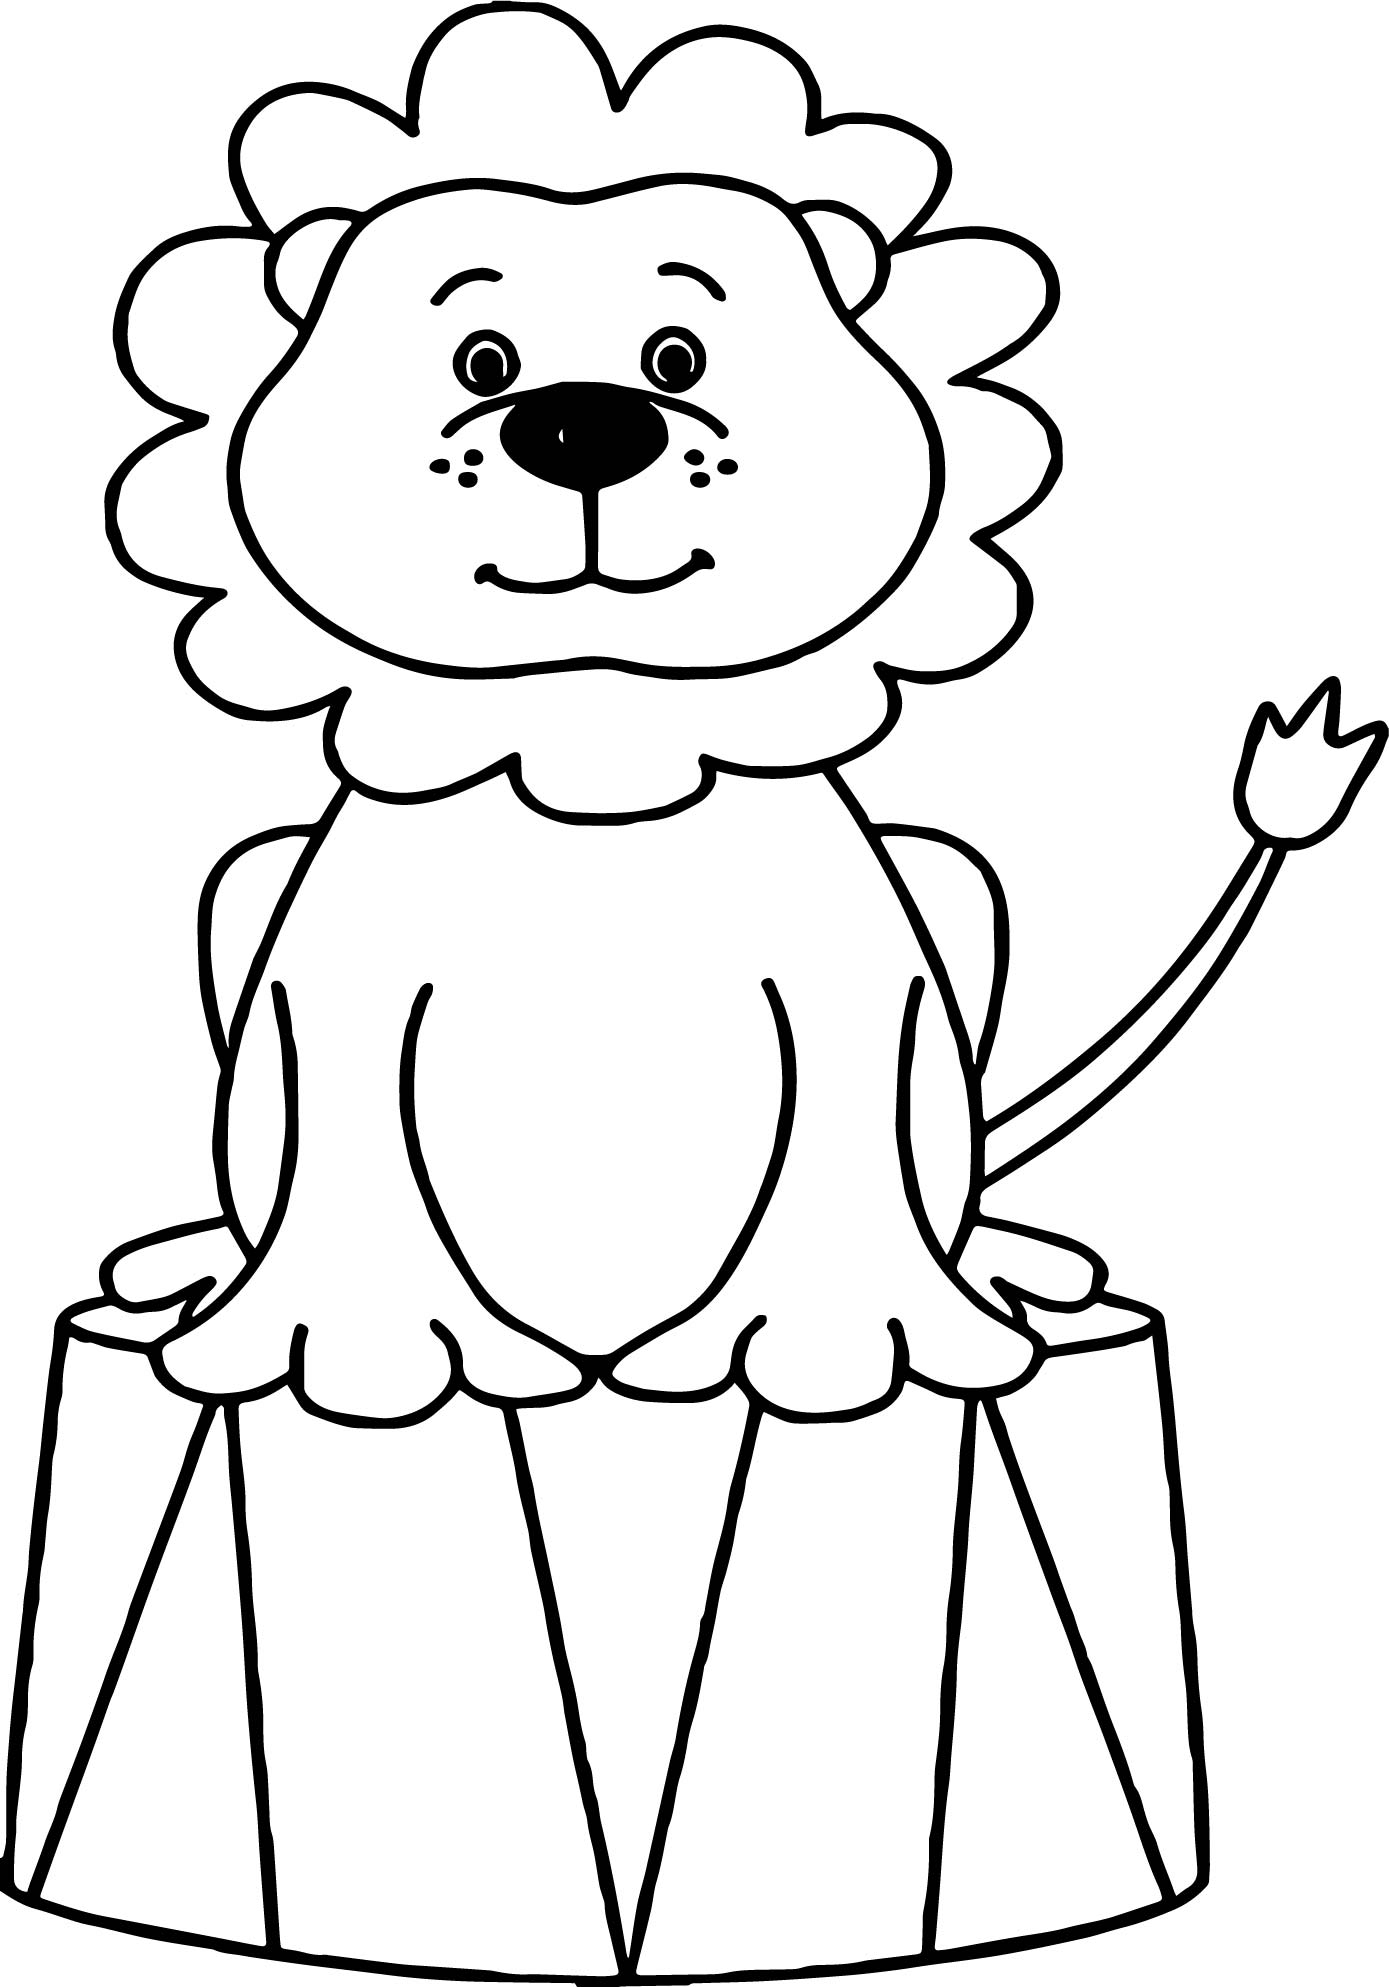 lion circus animals coloring page wecoloringpage